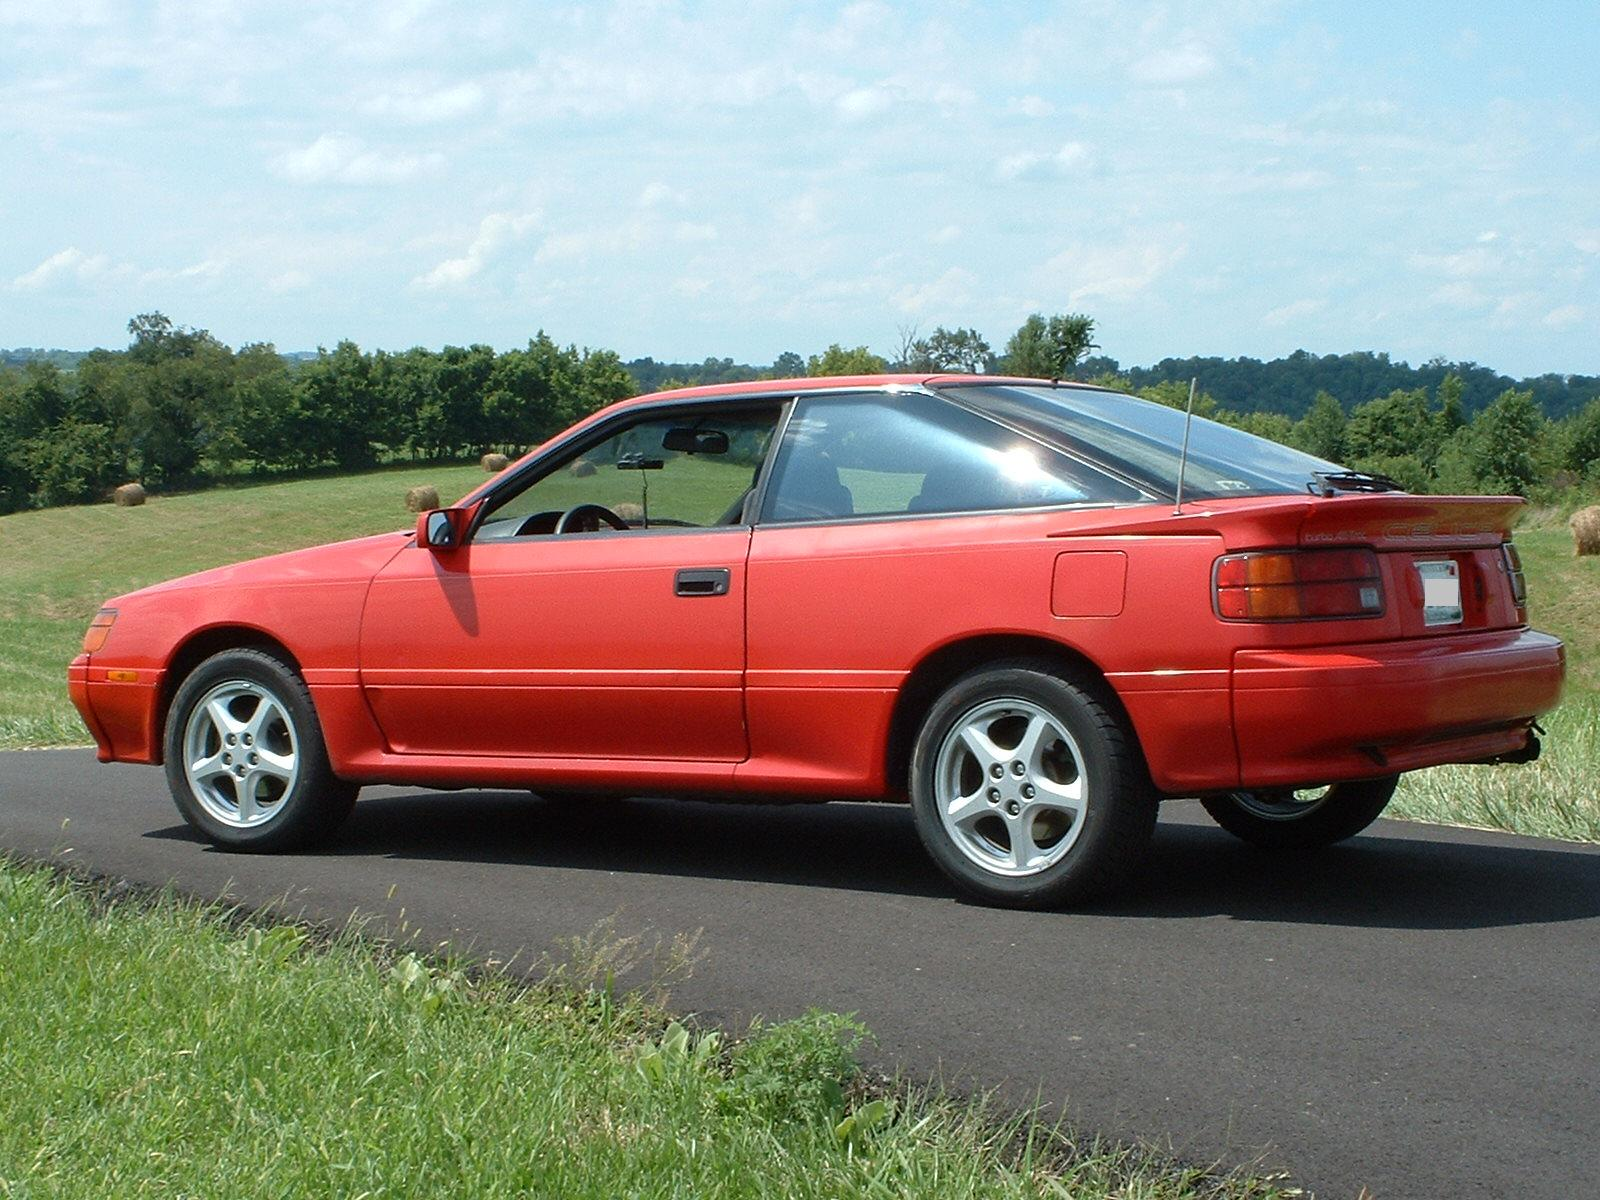 1988 toyota celica all trac turbo for sale. Black Bedroom Furniture Sets. Home Design Ideas